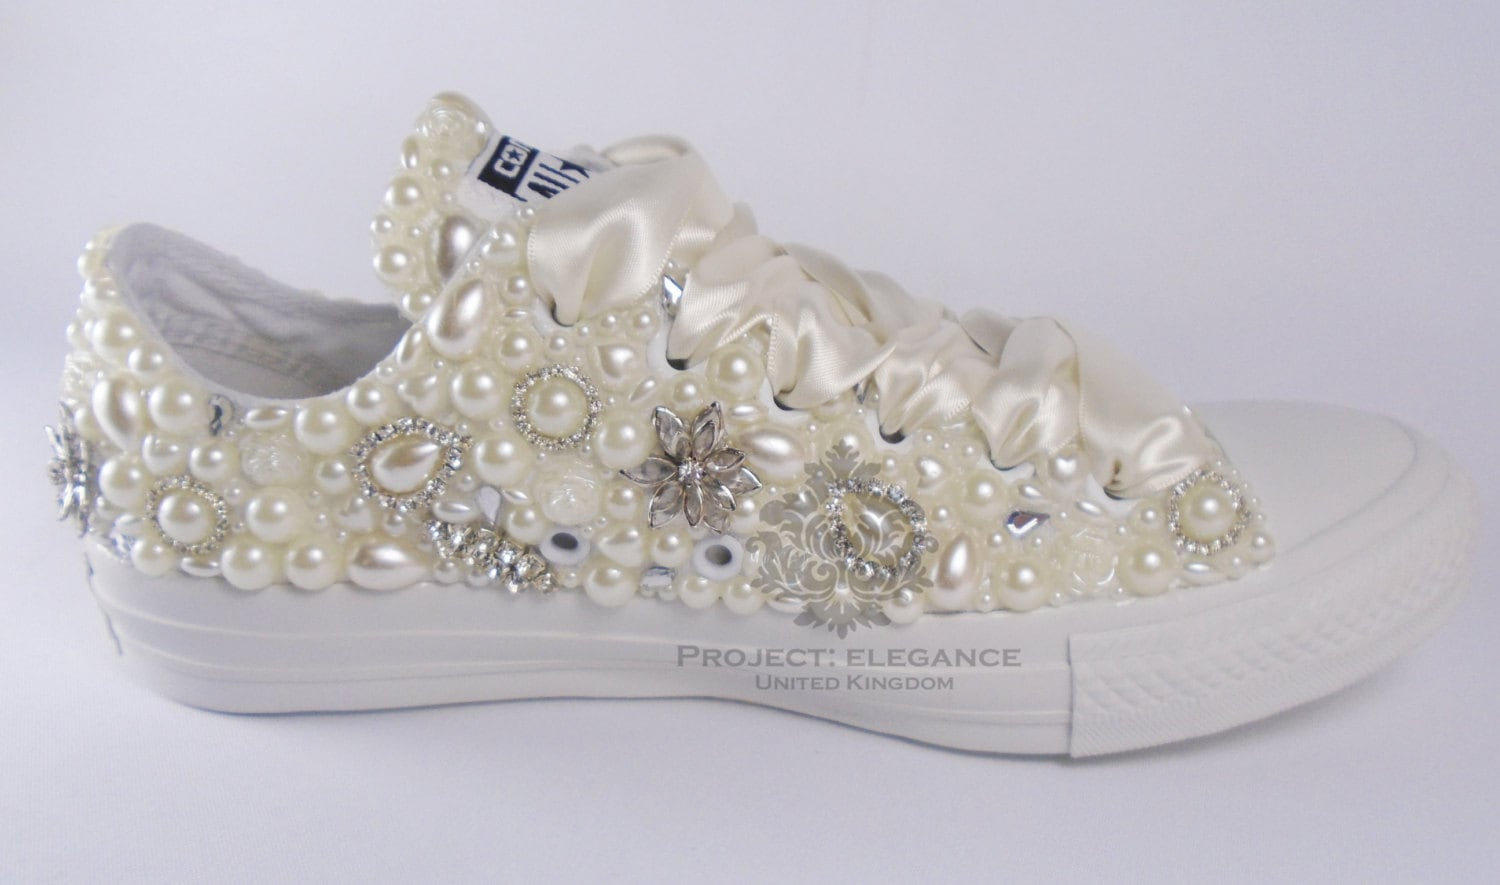 Custom Date Lace Bridal Converses Ivory Lace Wine Converse Wedding Tennis shoes Wedding Converse